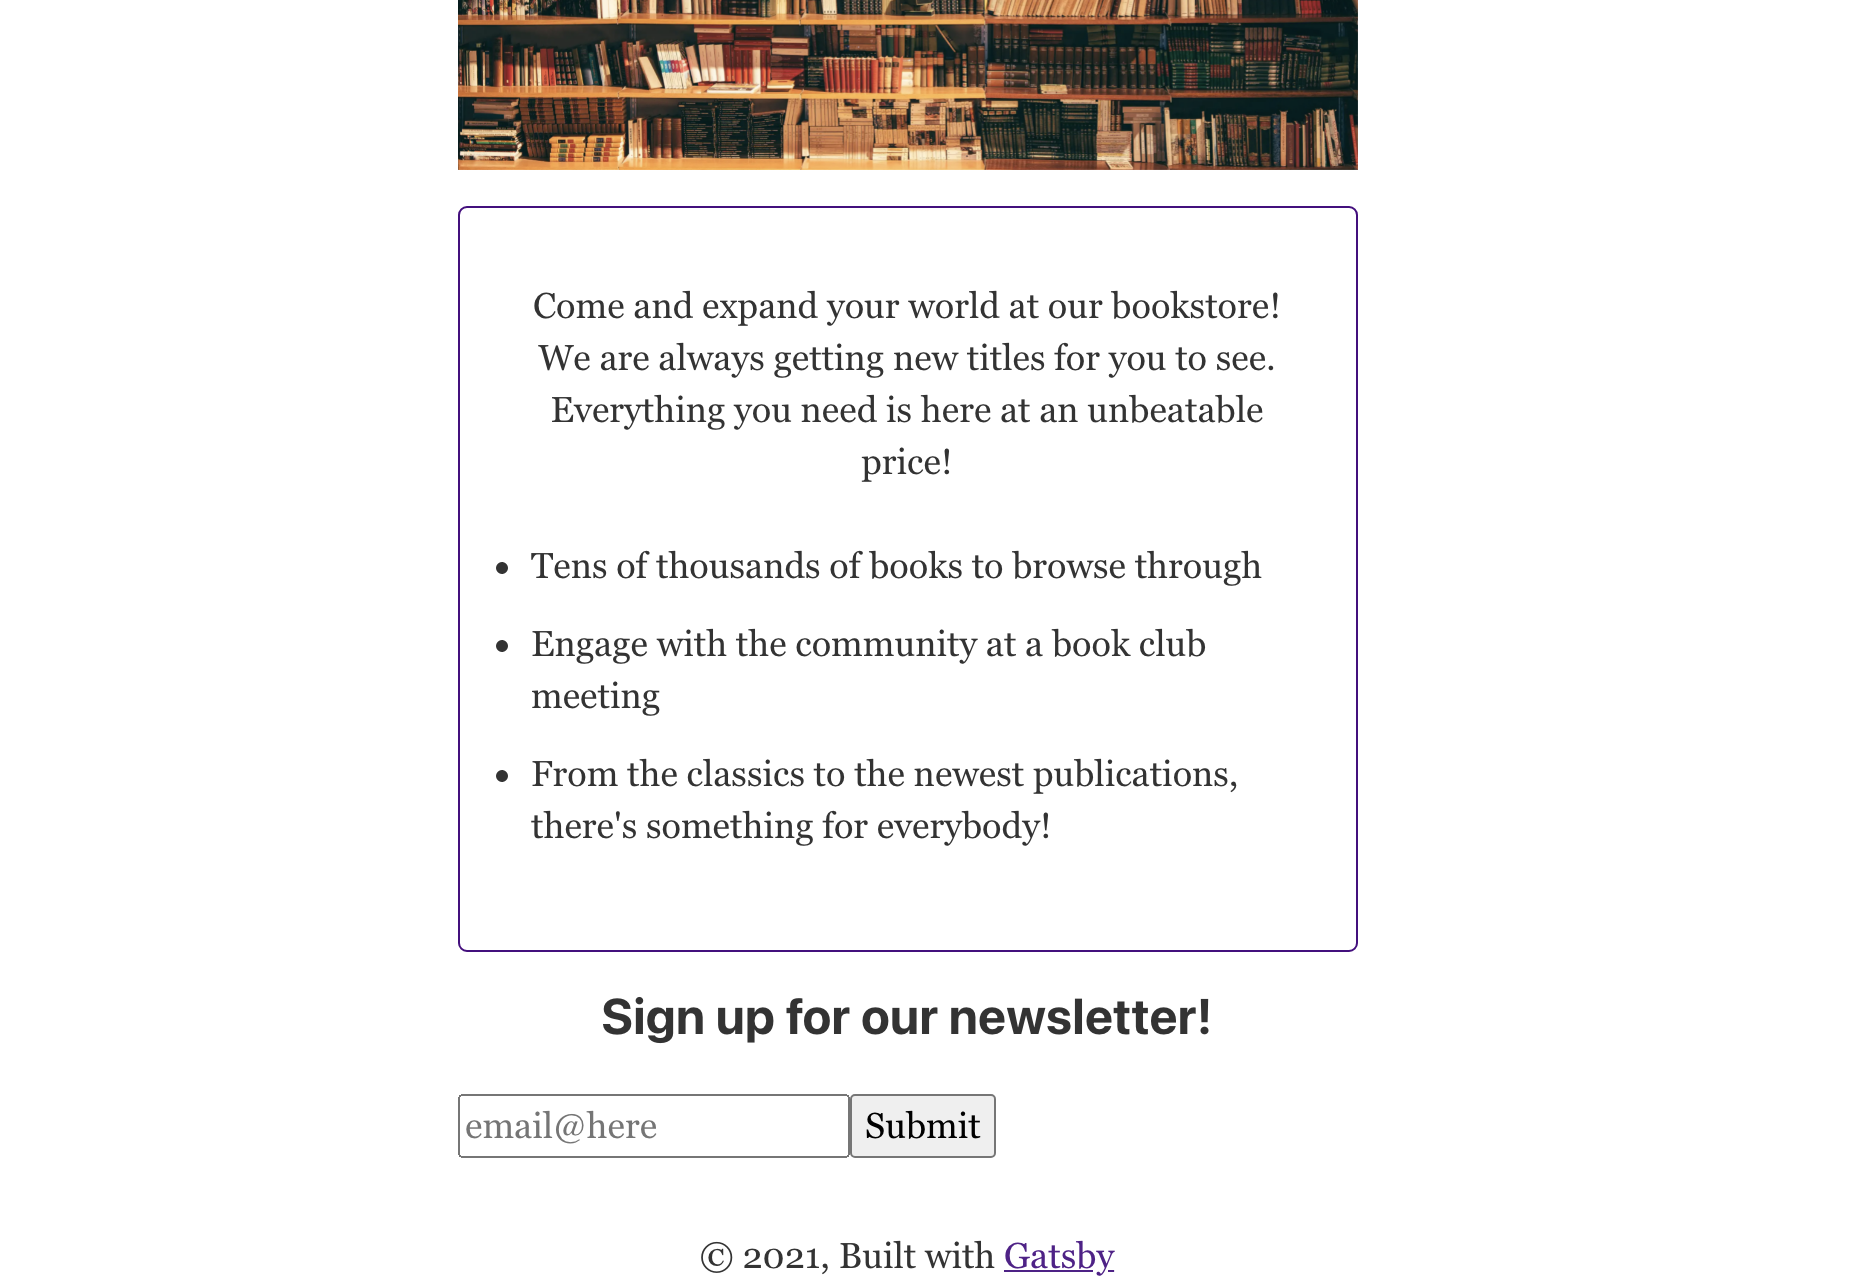 Email signup button rendered below the feature list on the landing page.